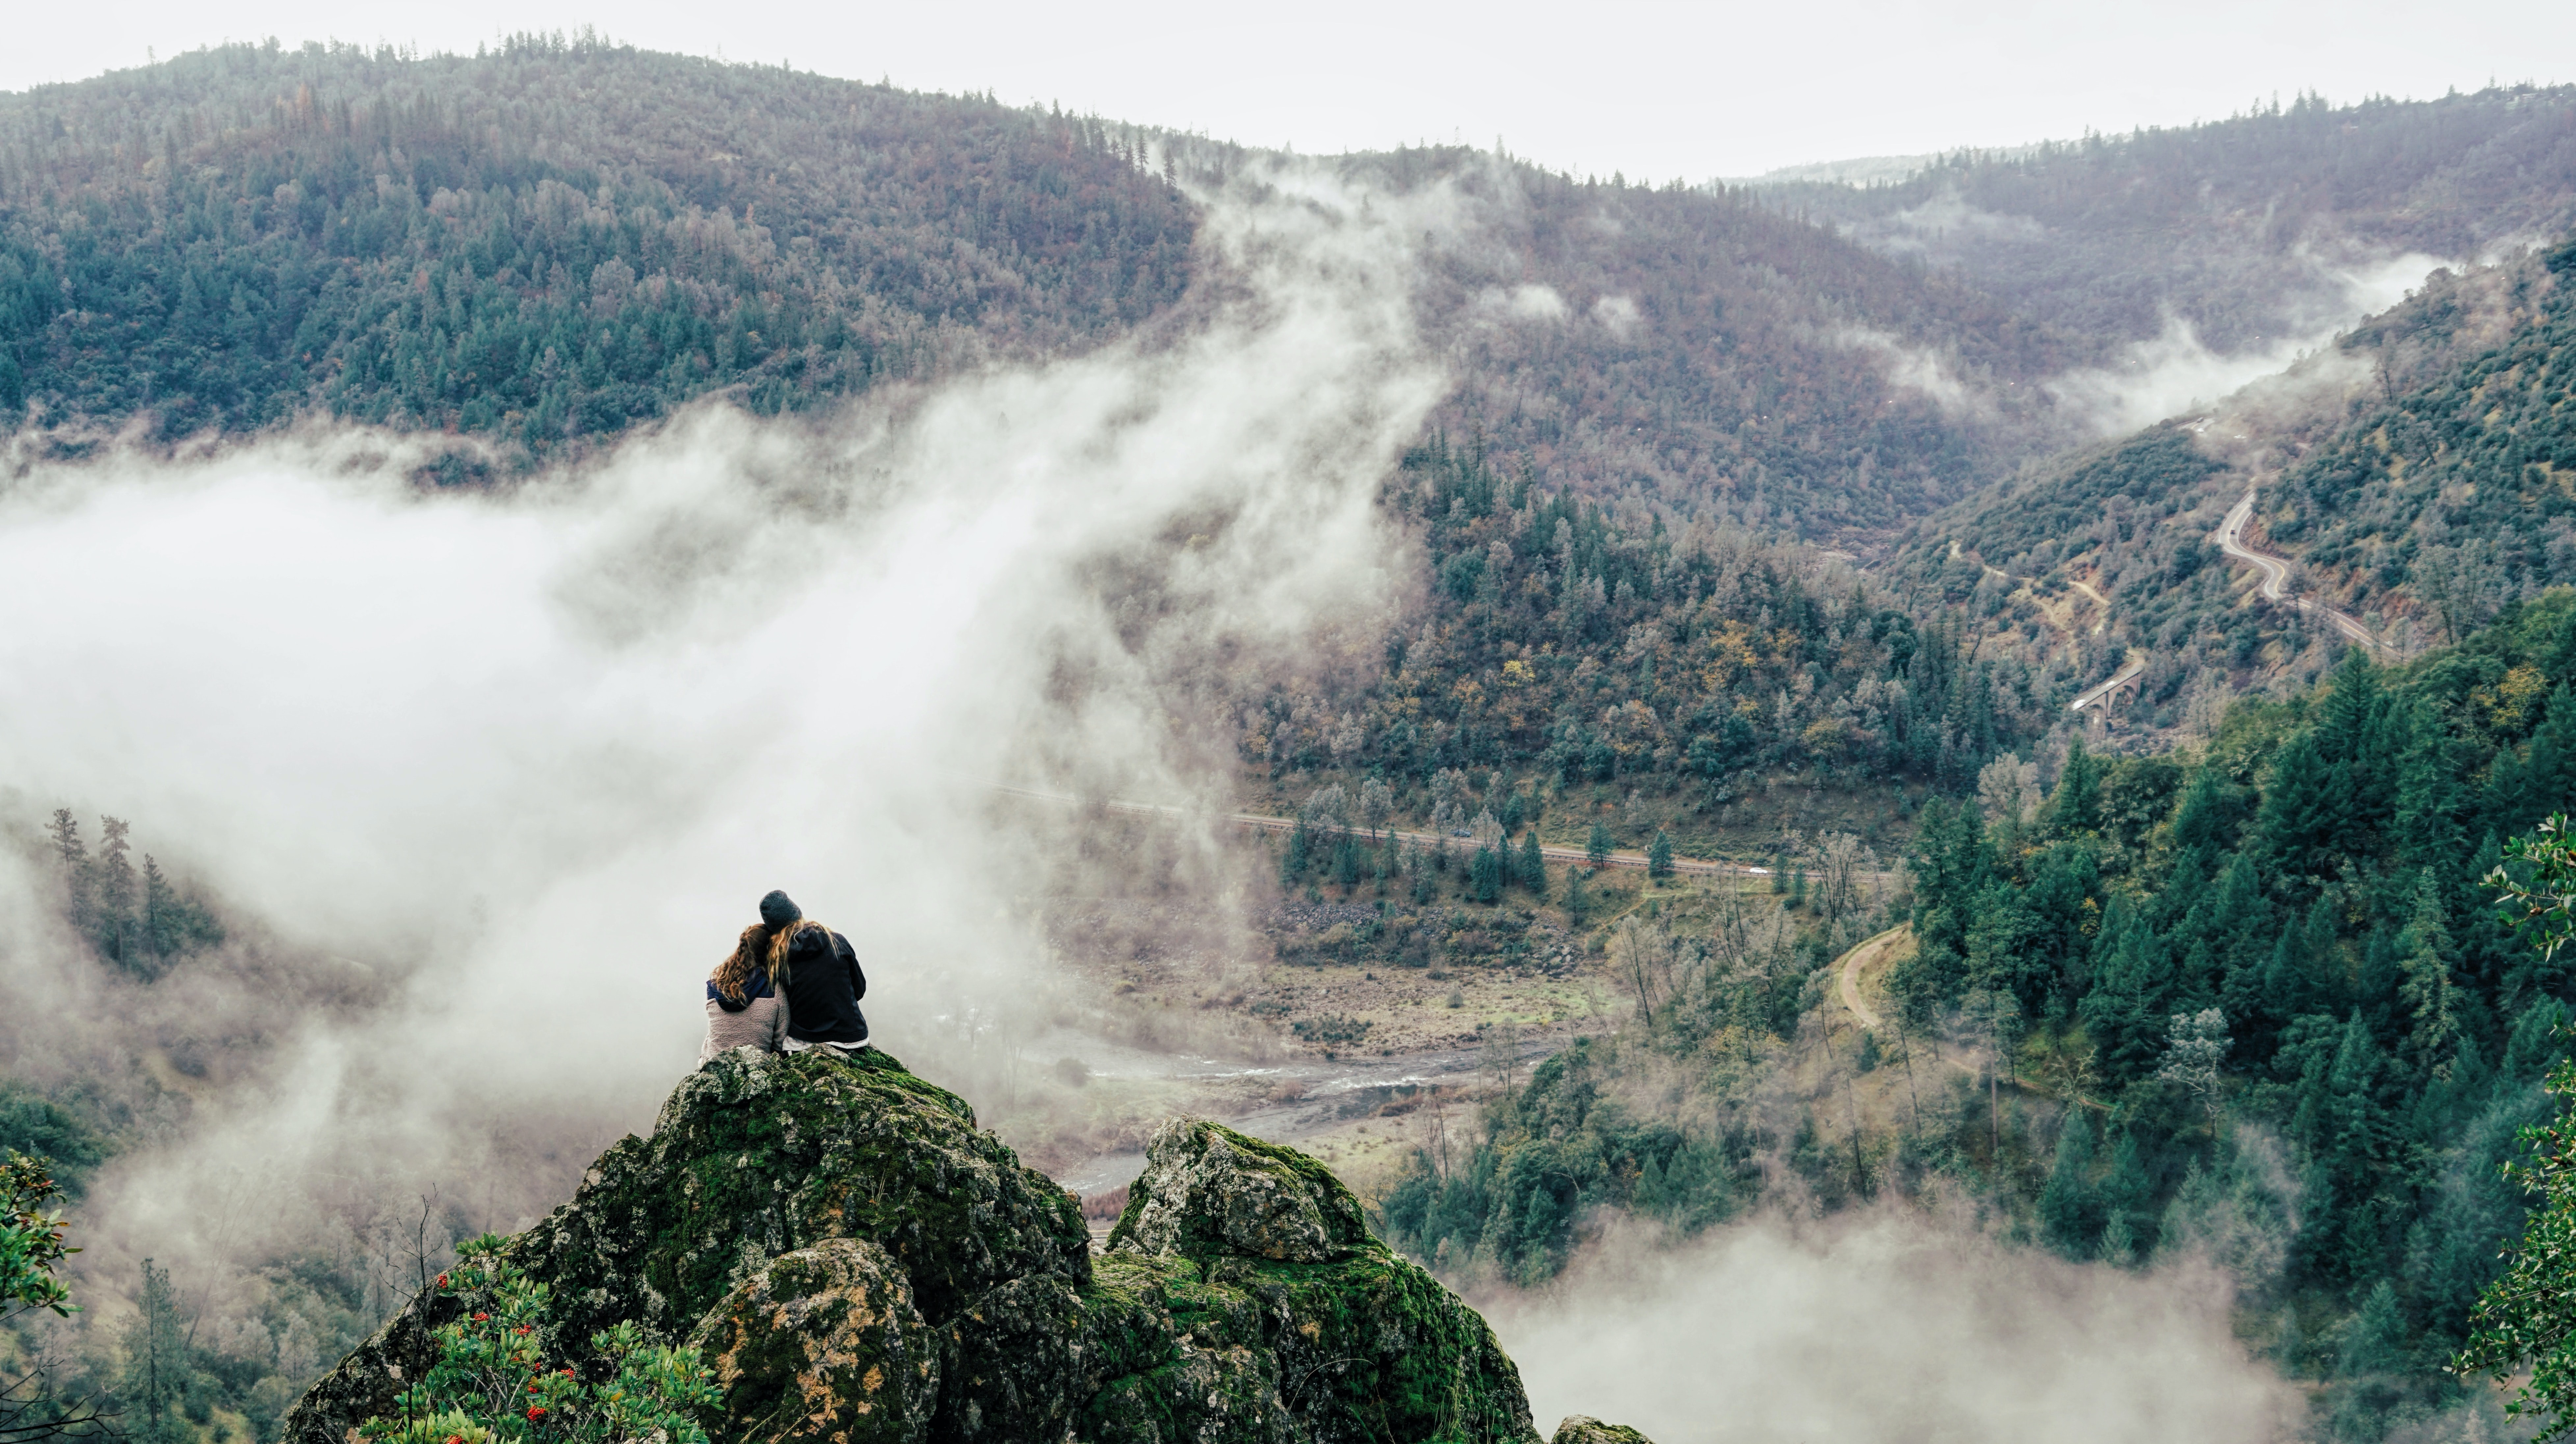 Two people leaning against each other on a moss-covered ledge in the mountains